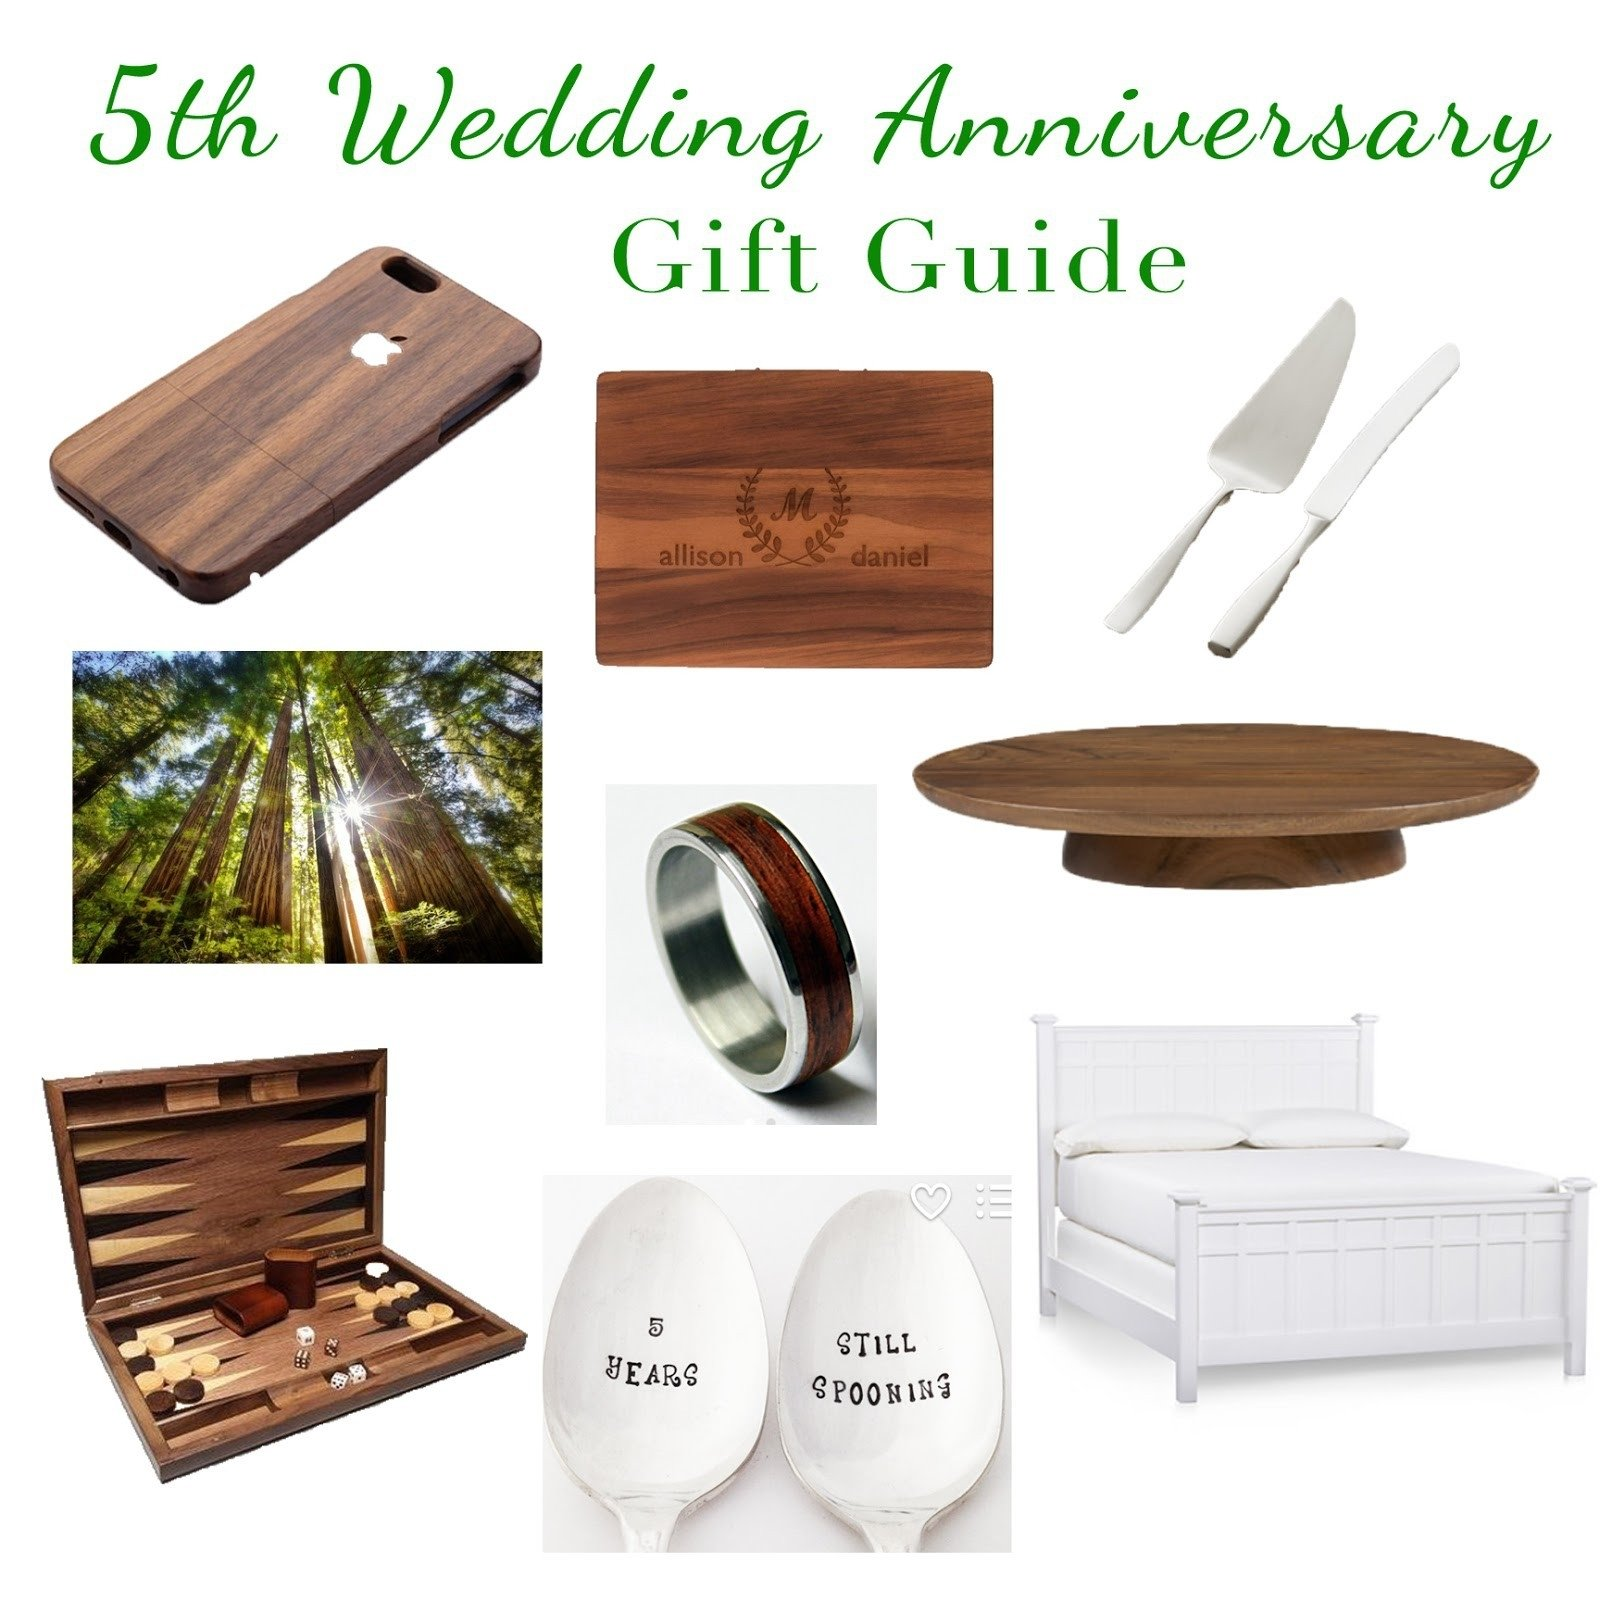 10 Attractive Five Year Wedding Anniversary Gift Ideas fifth year wedding anniversary gift ideas elegant the adventure